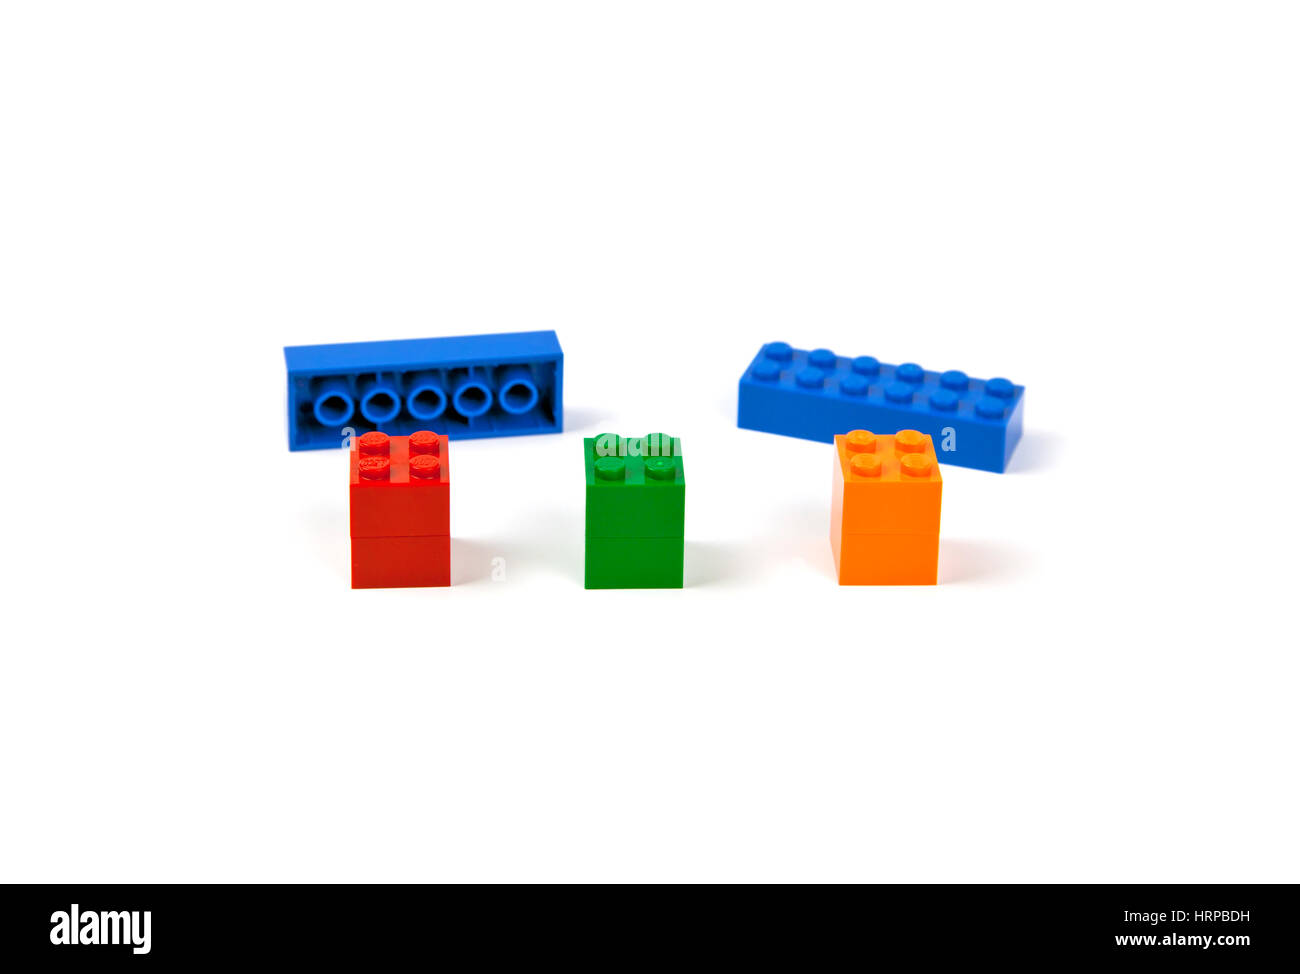 Lego bricks or pieces ready to be mounted on three piers to form a model of a bridge or viaduct. - Stock Image